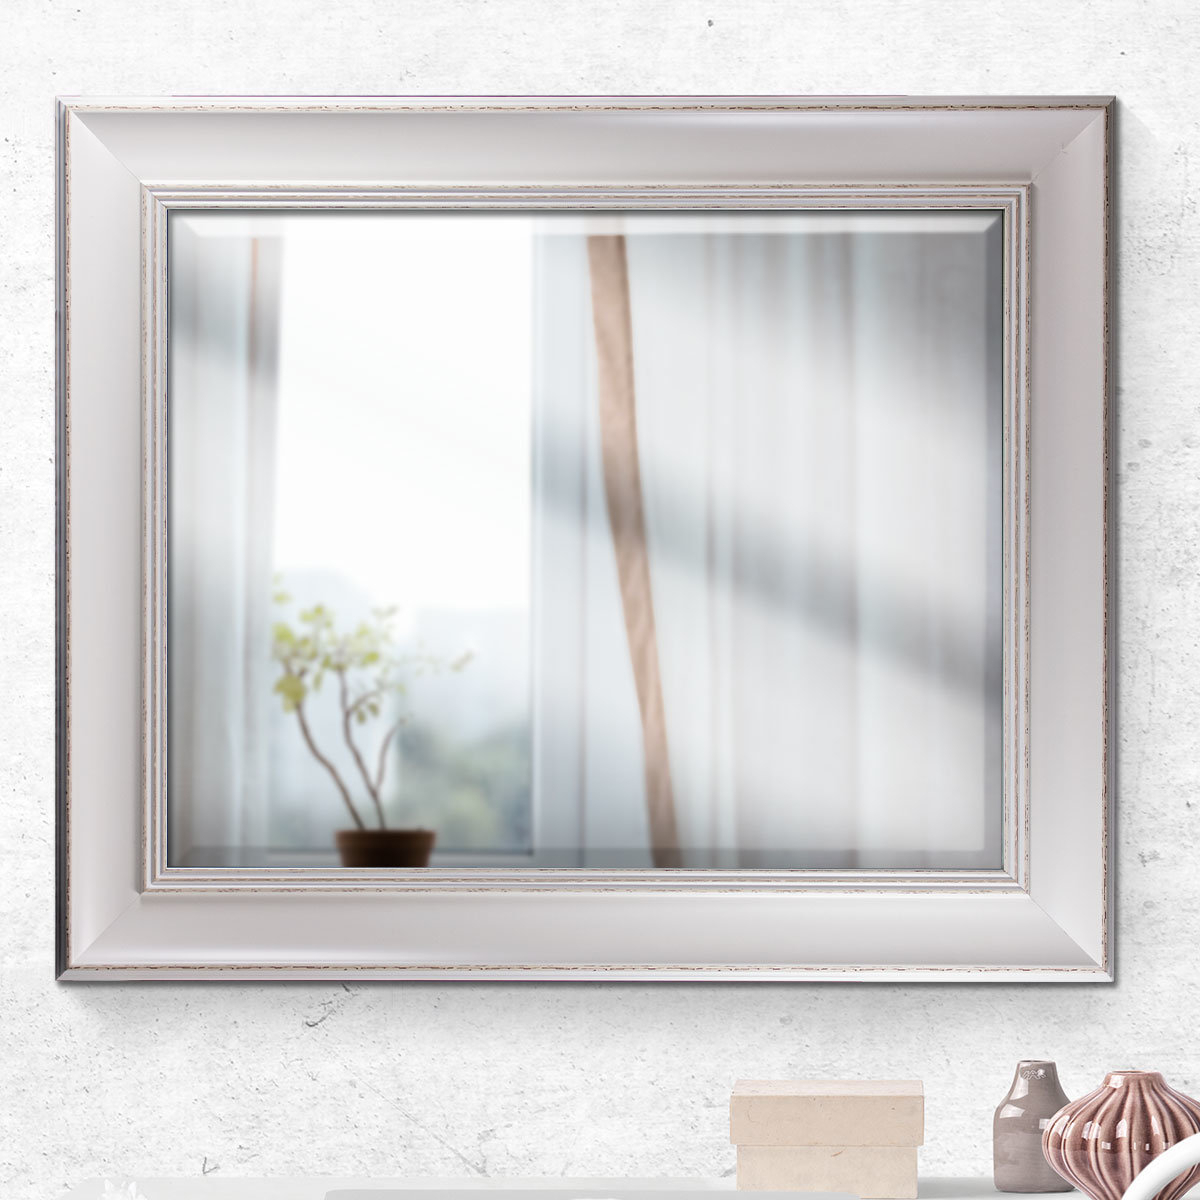 Contemporary Vertical Rectangular Framed Wall Mirror With Regard To Dedrick Decorative Framed Modern And Contemporary Wall Mirrors (View 17 of 20)